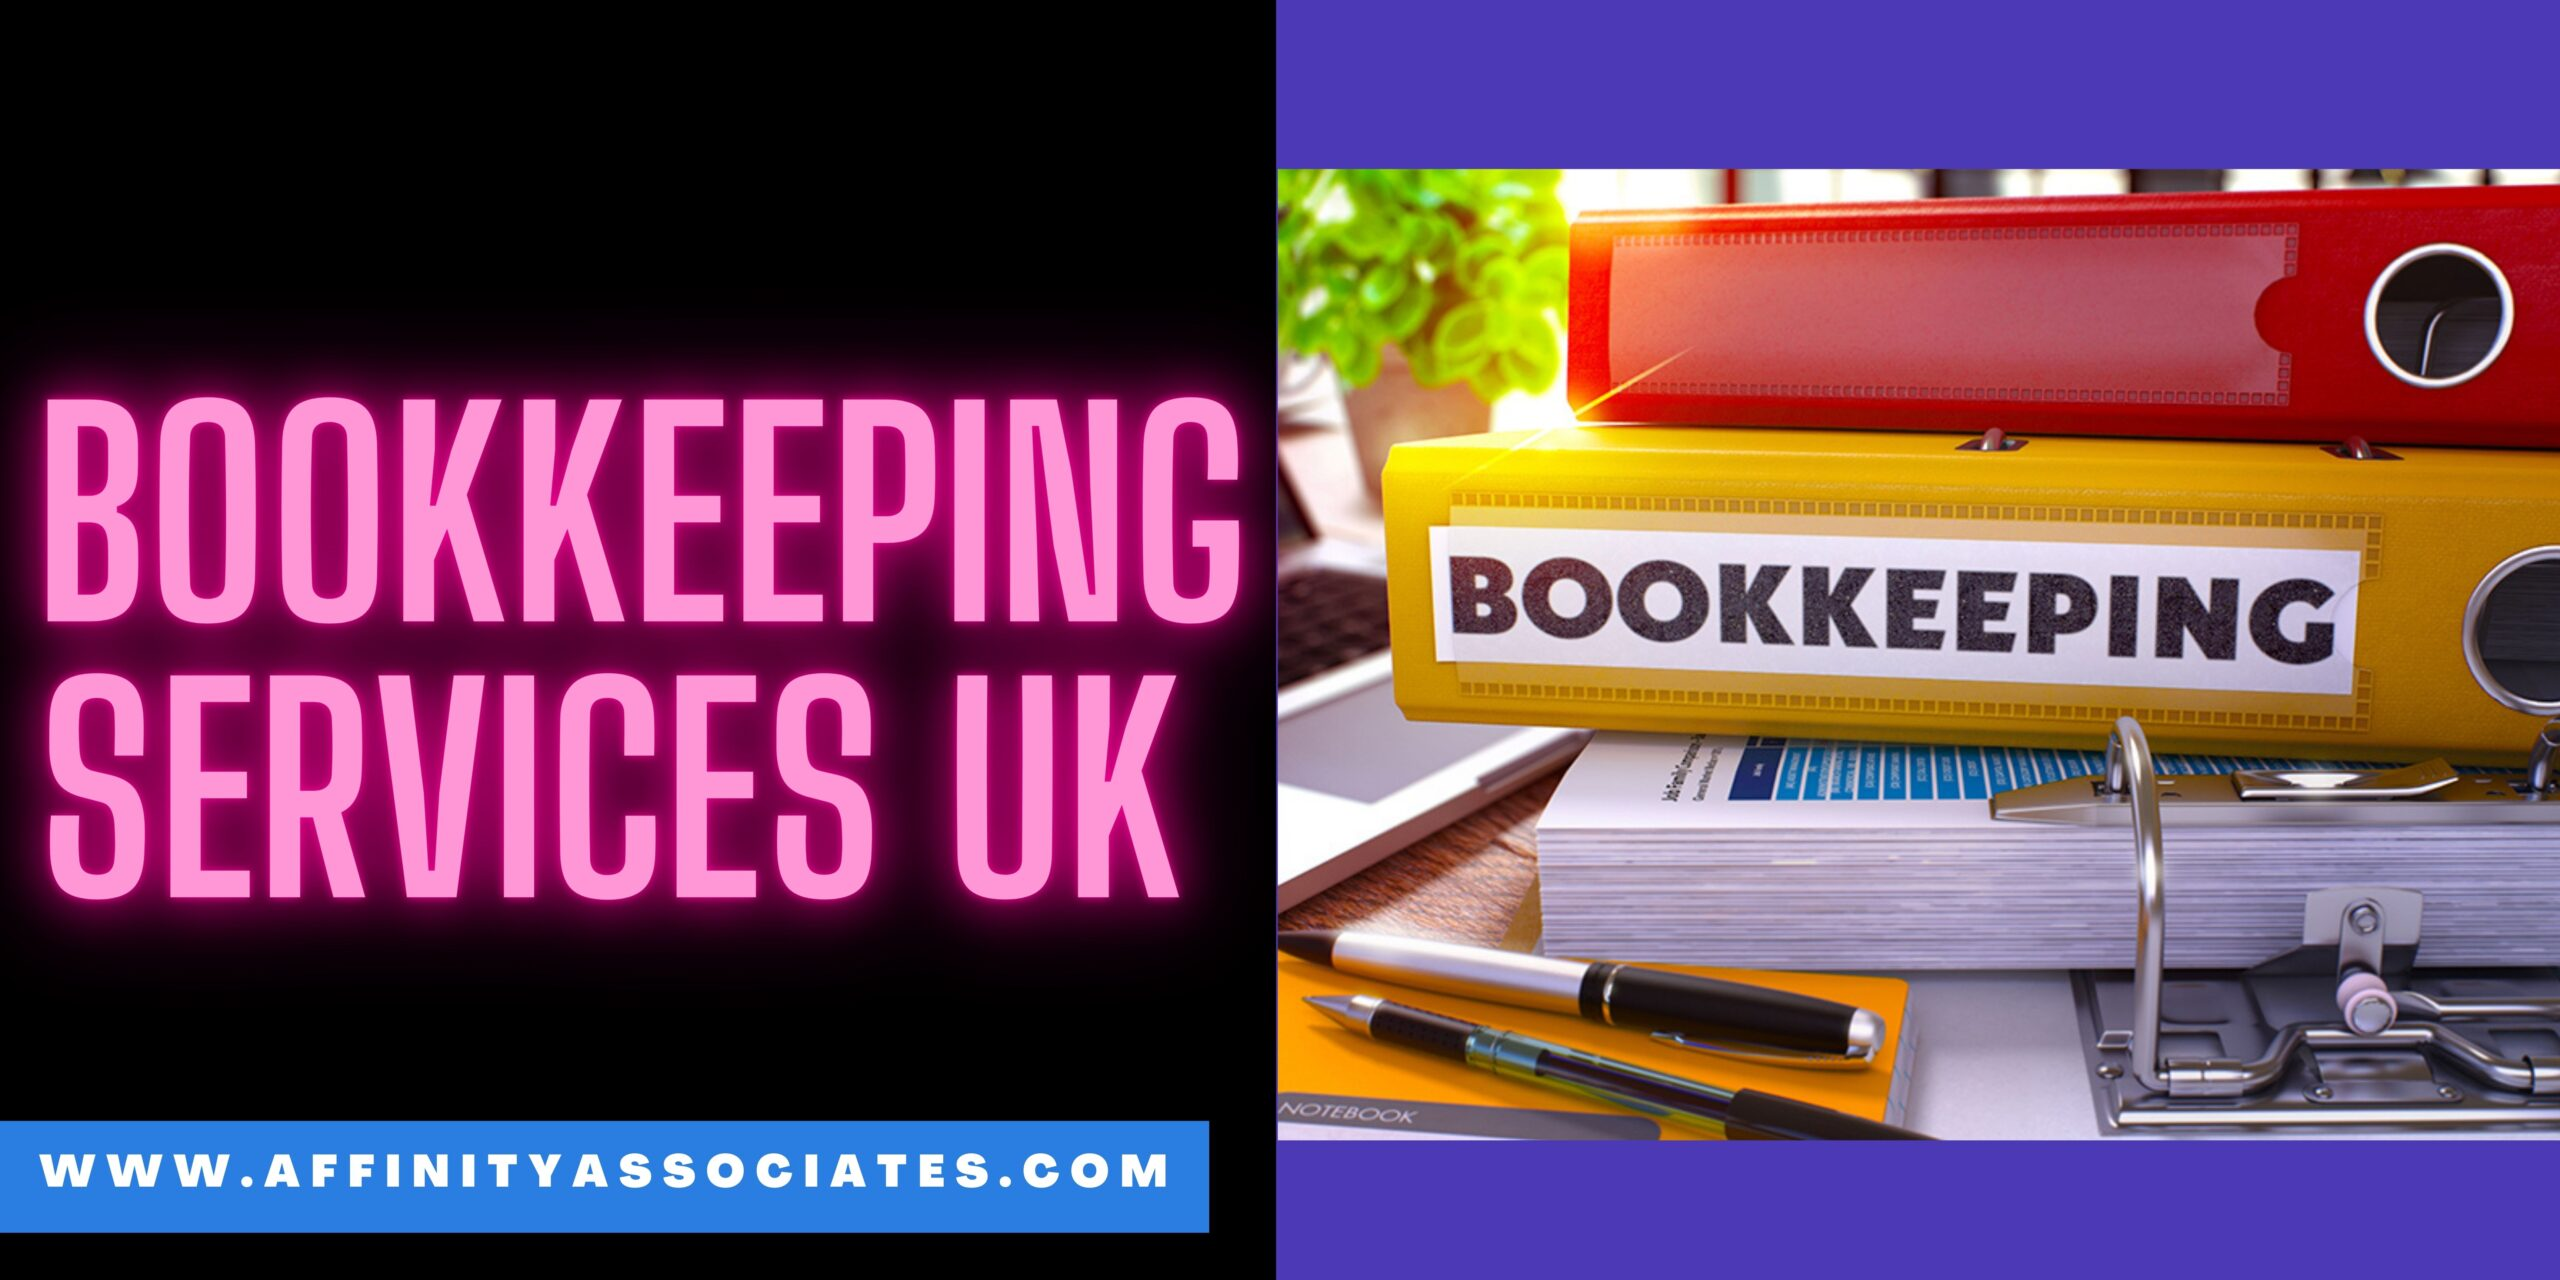 Bookkeeping Services UK – Why You Need a Professional Bookkeeper for Your Business